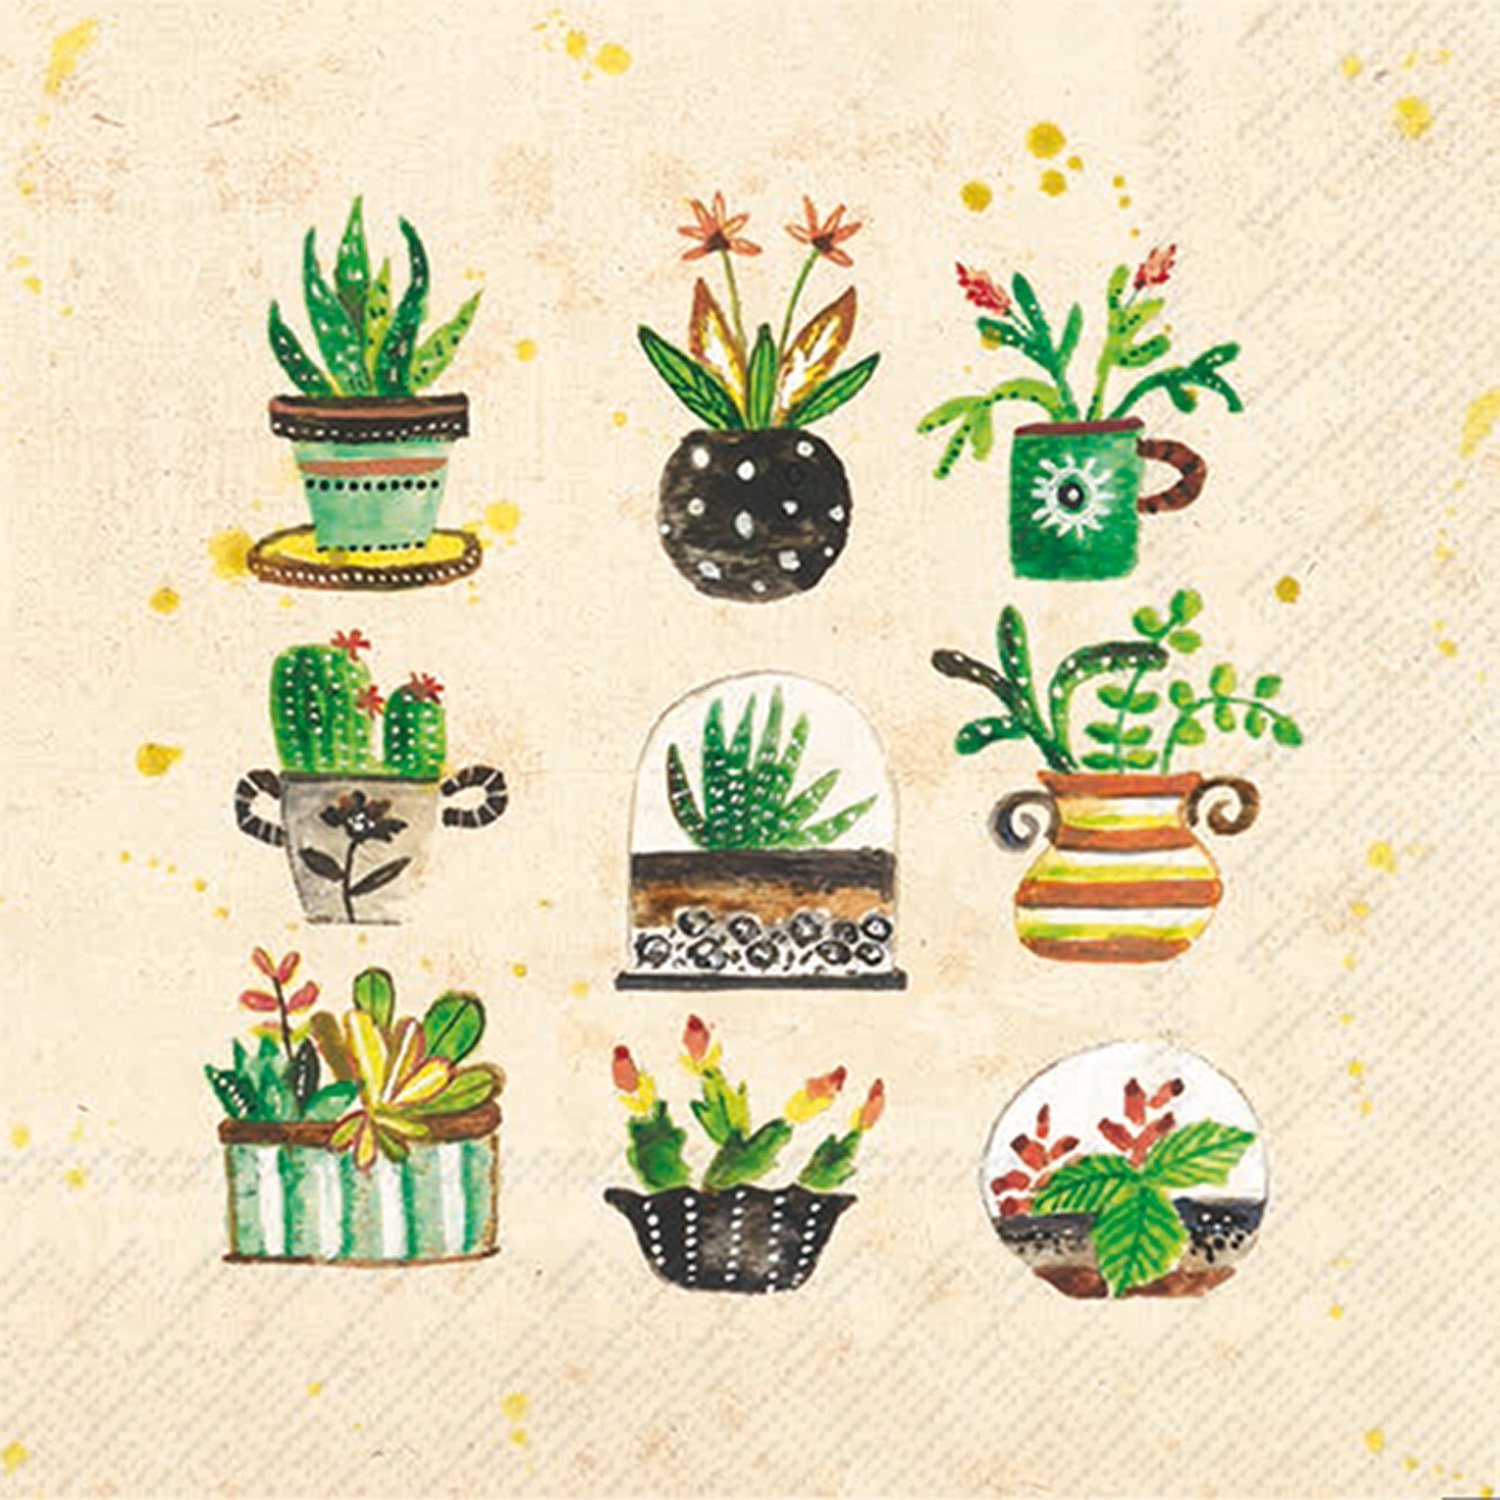 Celebrate the Home Lori Siebert 3-Ply Paper Cocktail Napkins, Succulents, 20 Count